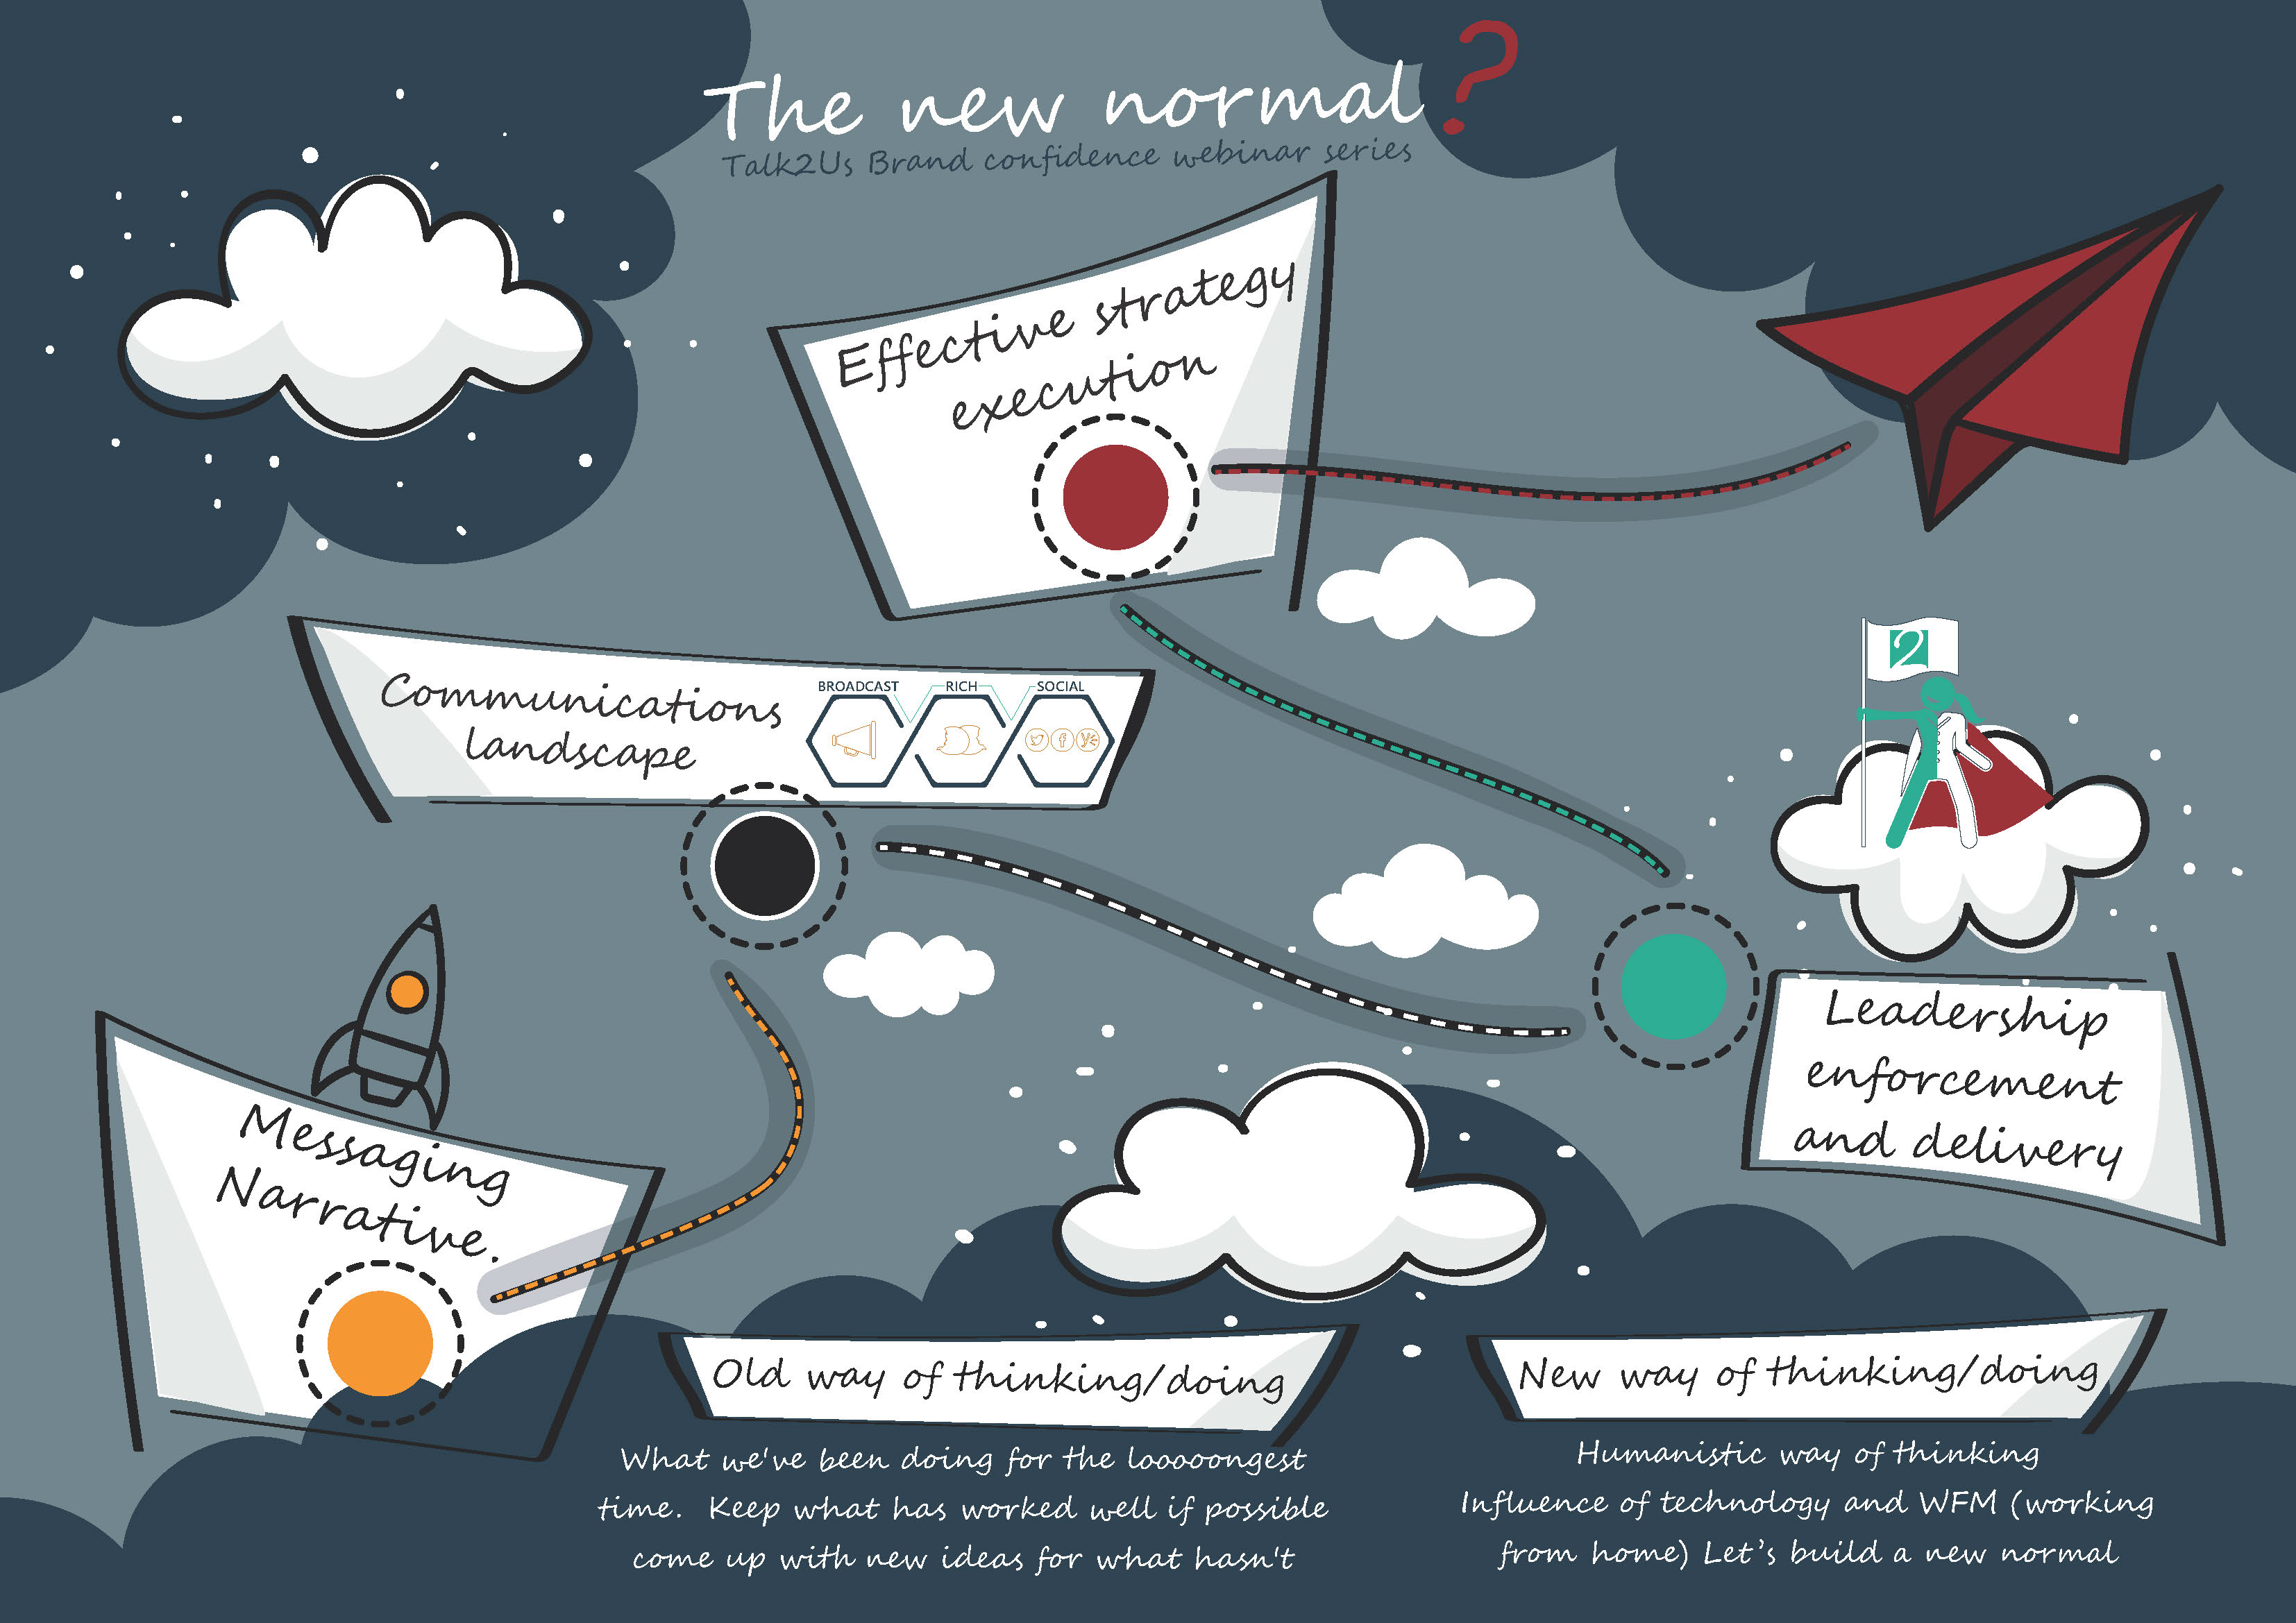 The new normal landscape infographic 1